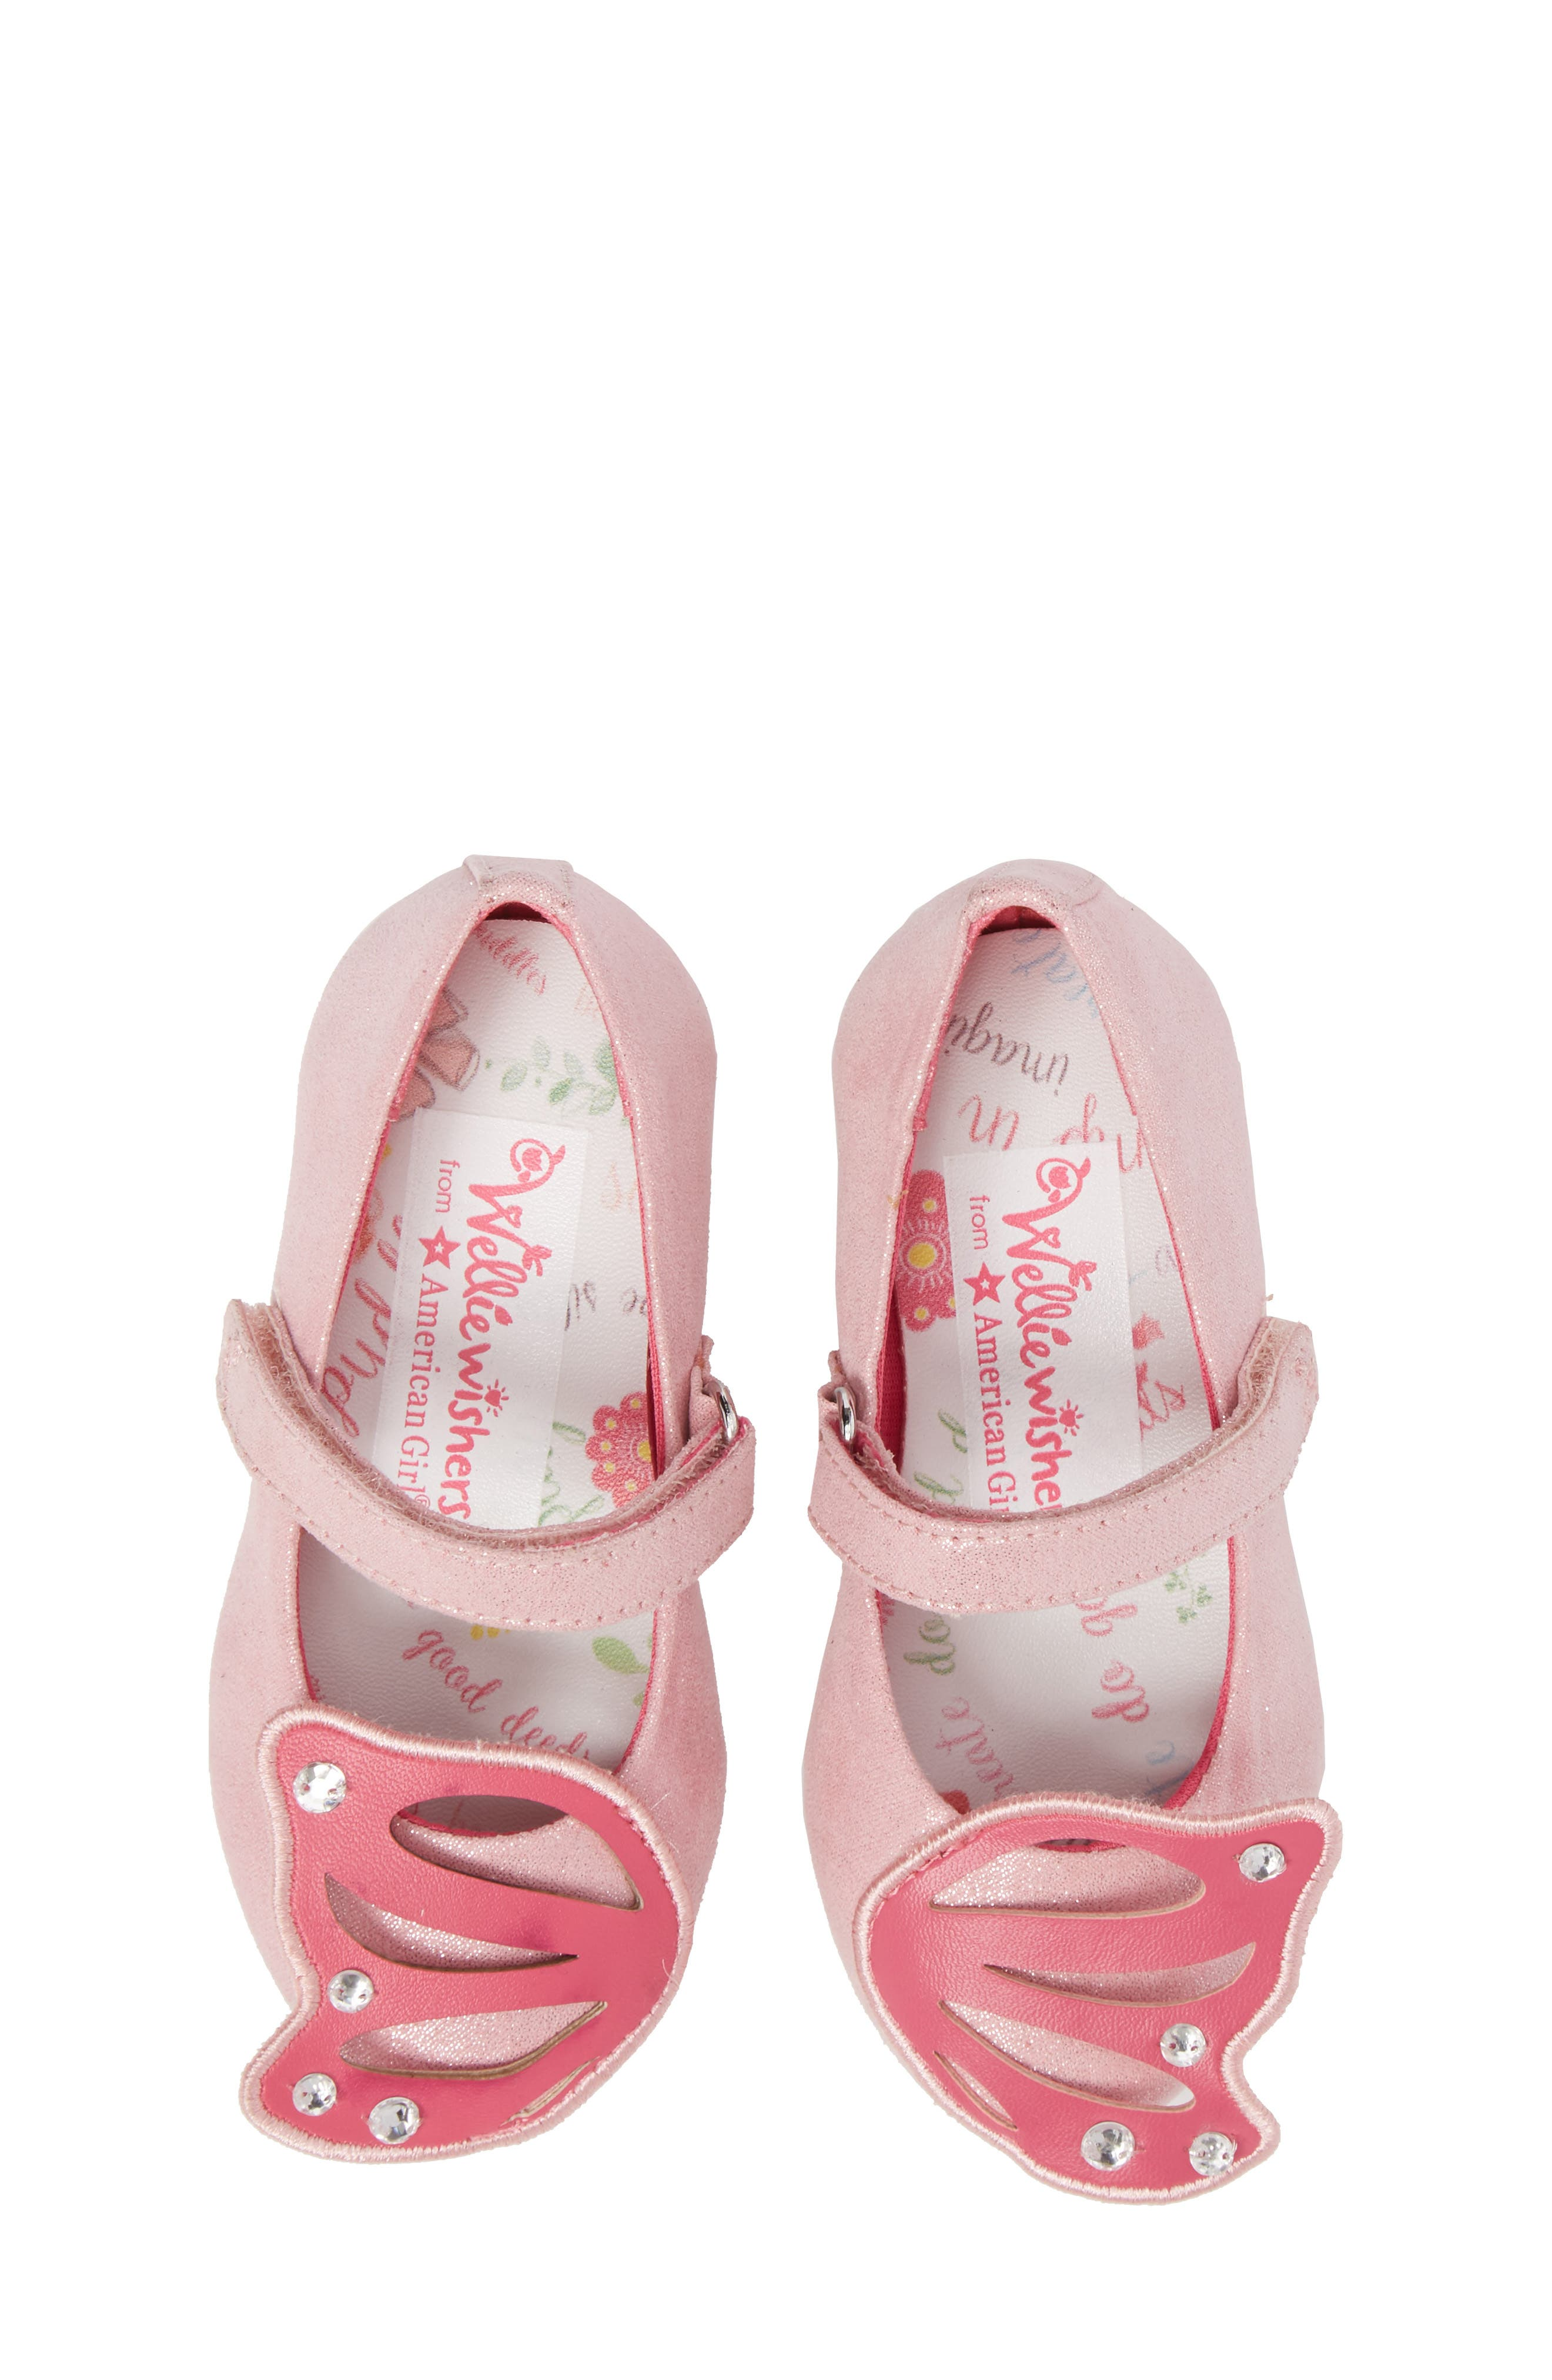 WELLIEWISHERS FROM AMERICAN GIRL,                             Flutter Wings Embellished Ballet Flat,                             Alternate thumbnail 5, color,                             650